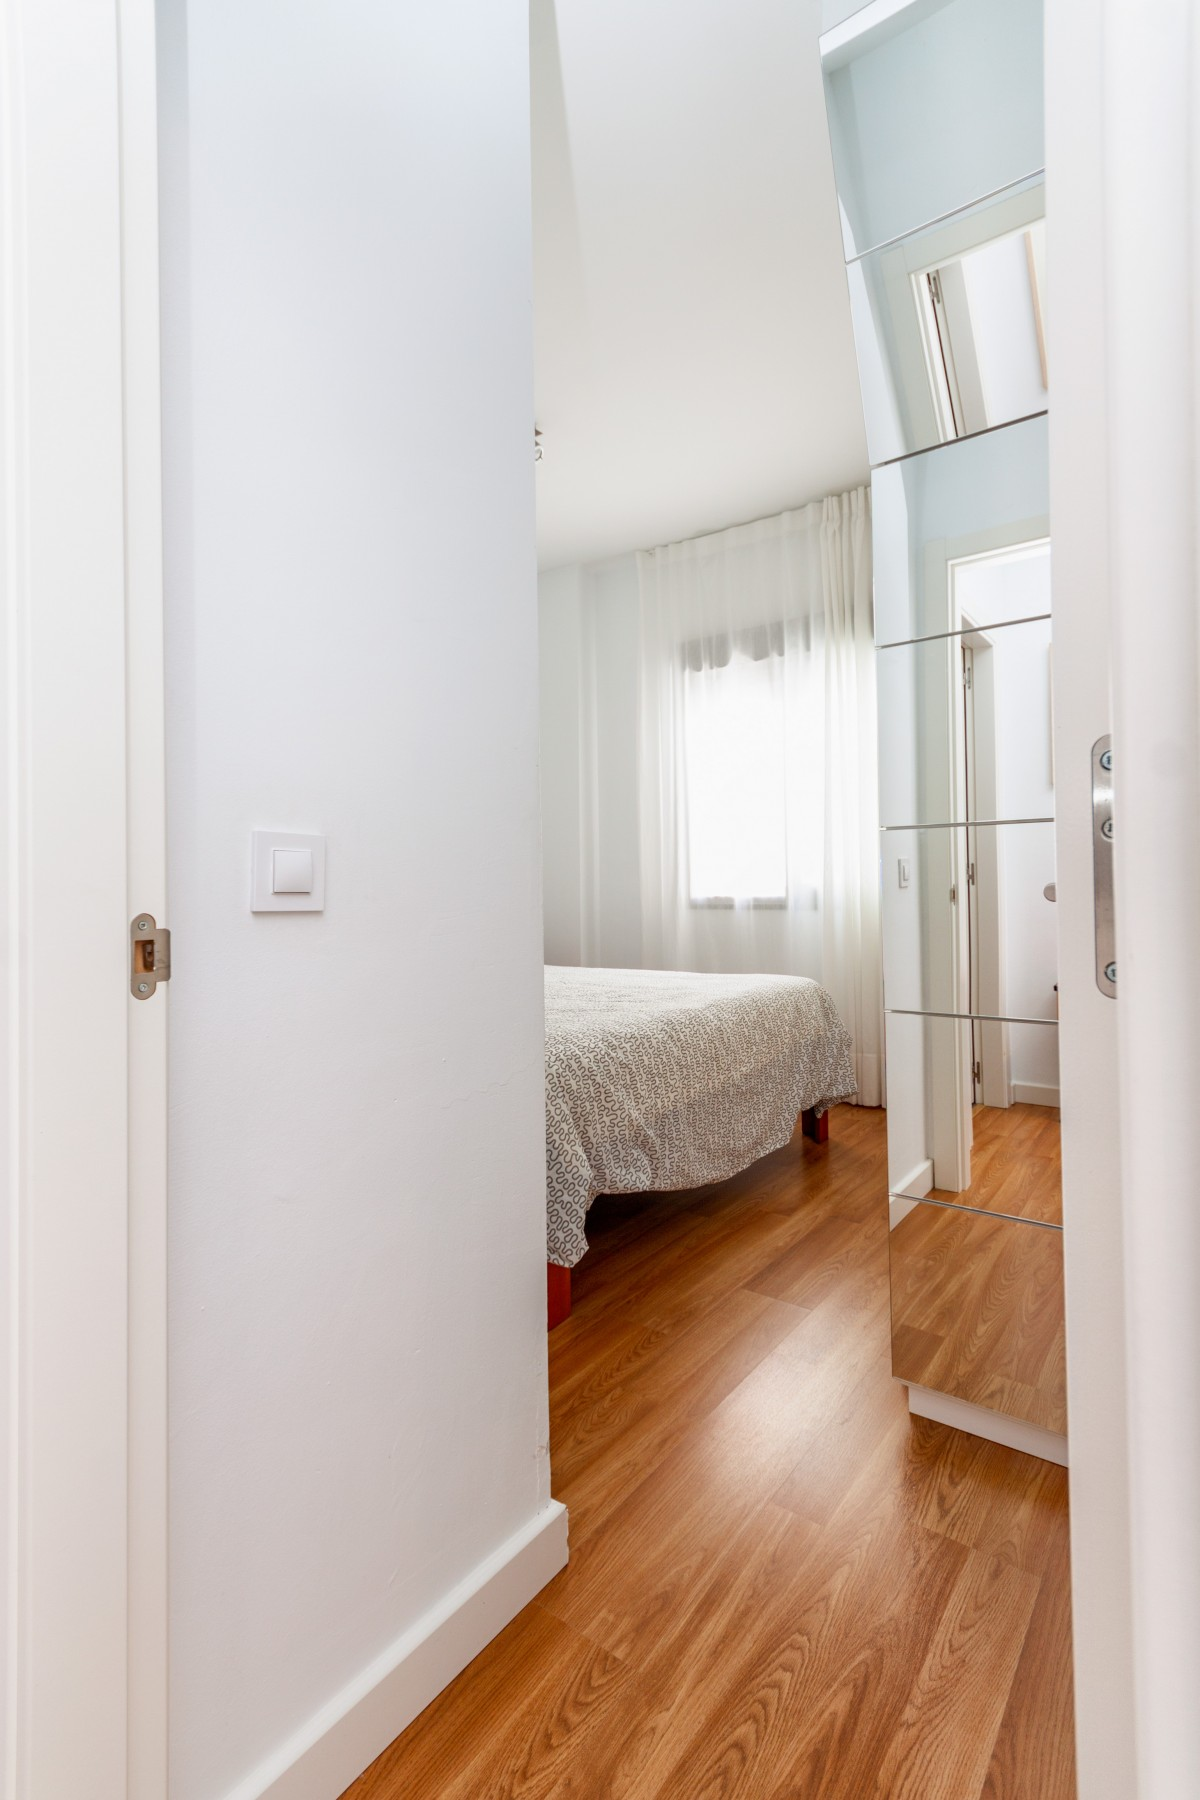 Beautiful penthouse in Malaga city centre with private rooftop